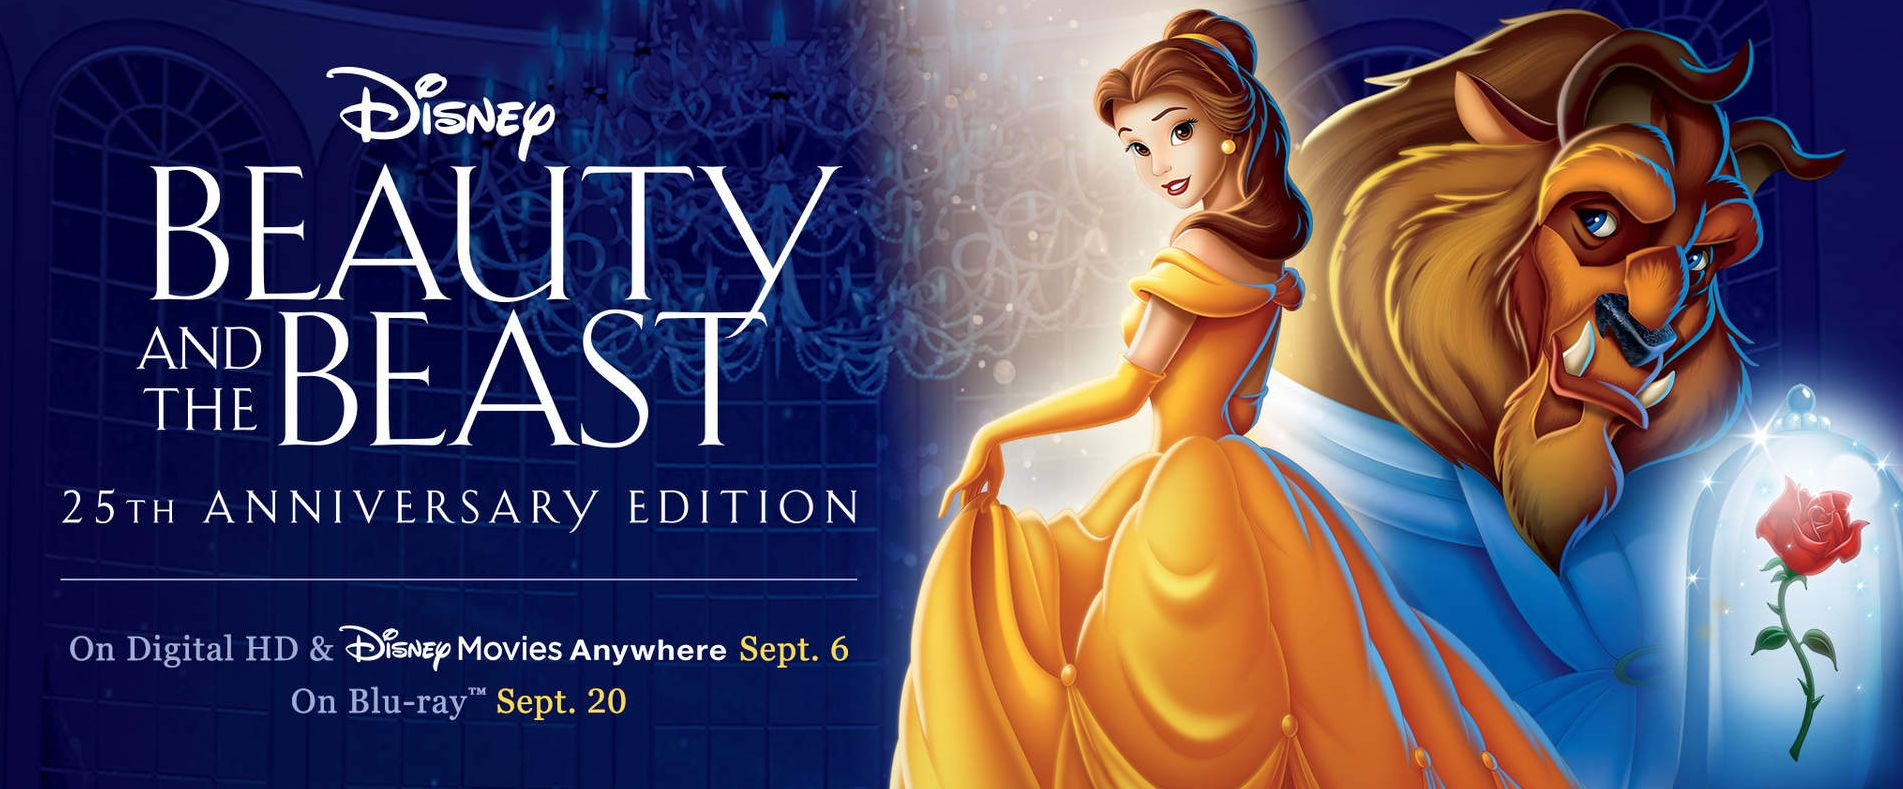 Beauty and the Beast gets a 25th anniversary edition